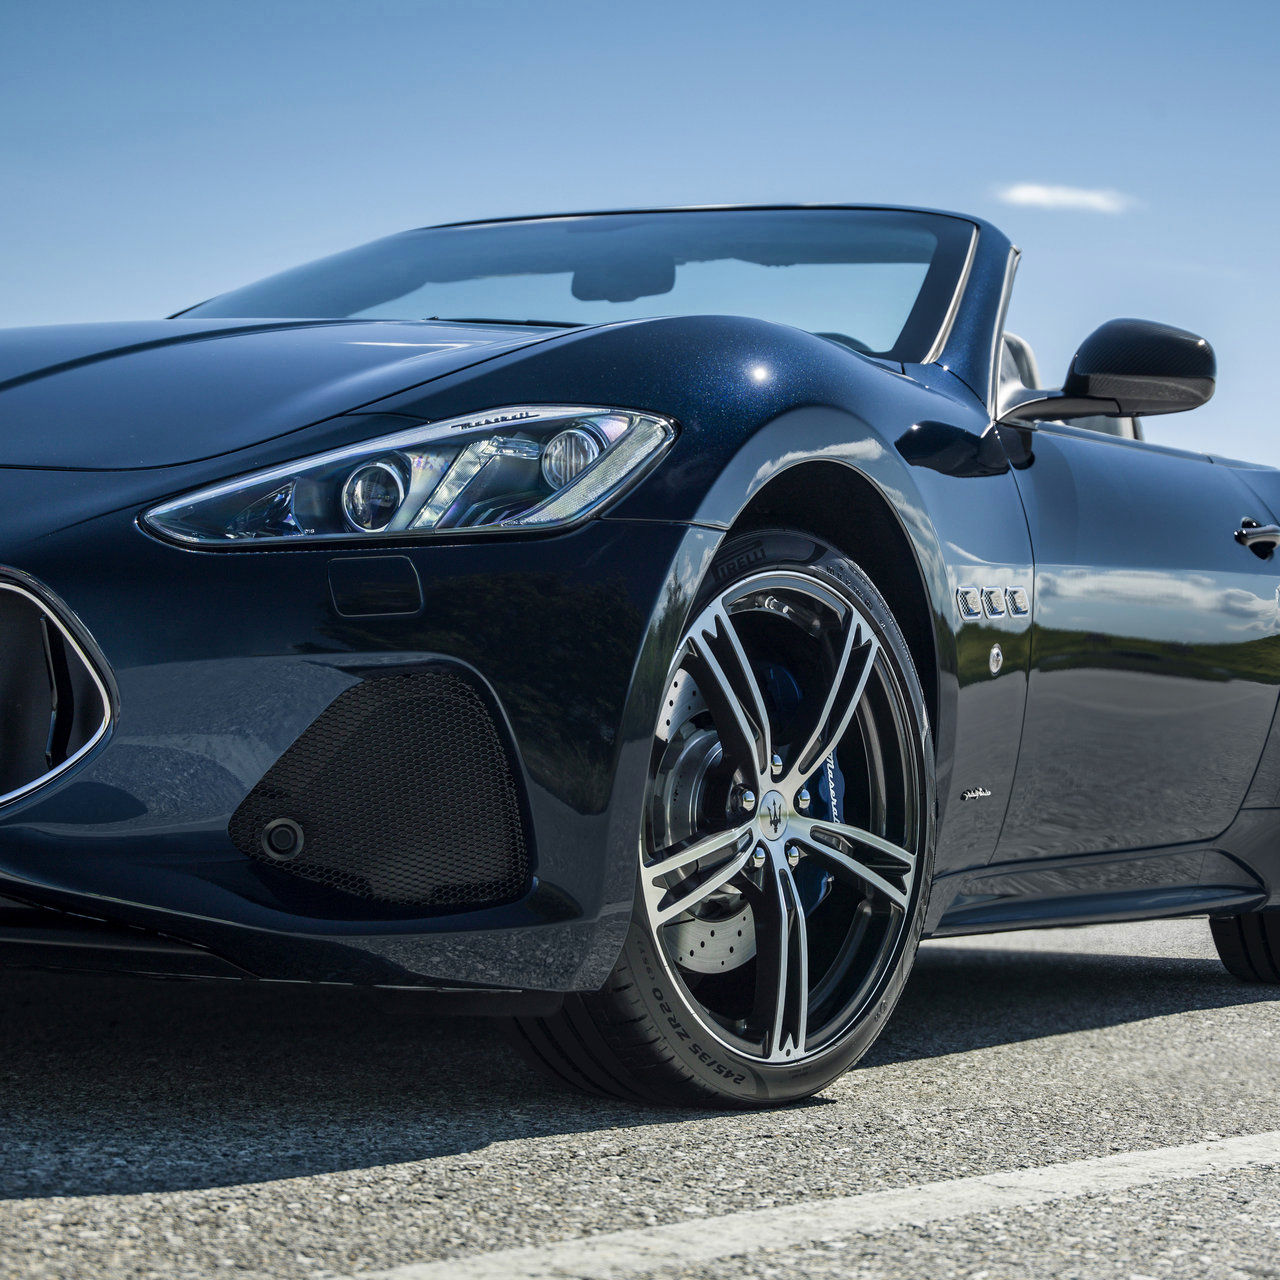 Maserati GranCabrio - headlights, front alloy wheels